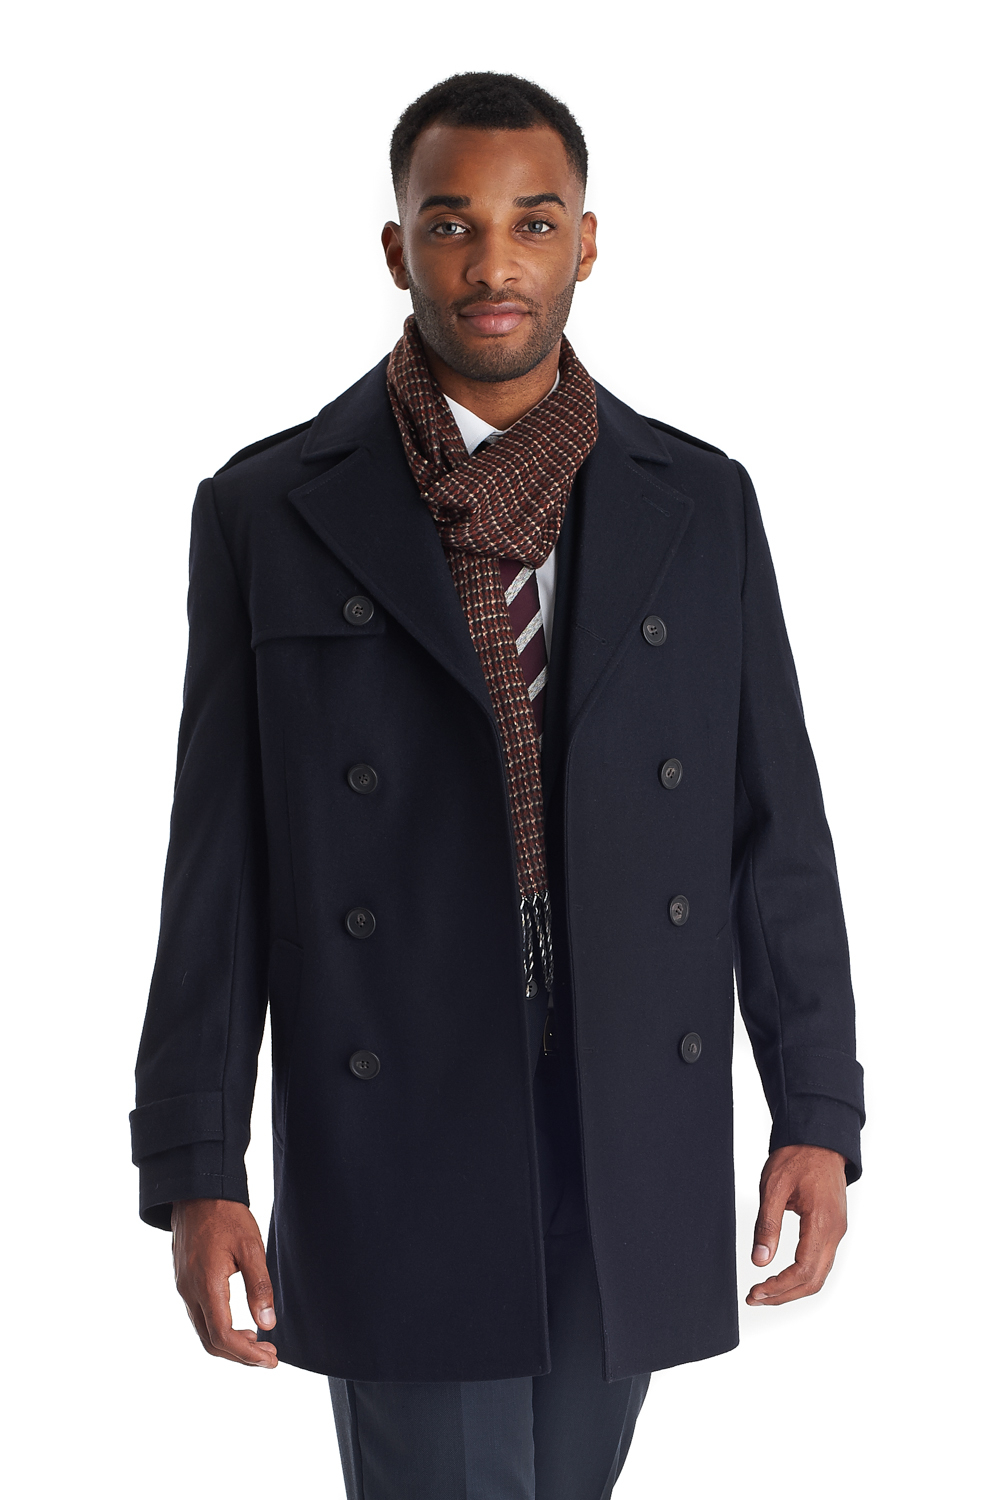 French connection Tailored Fit Double Breasted Jacket Navy in Blue